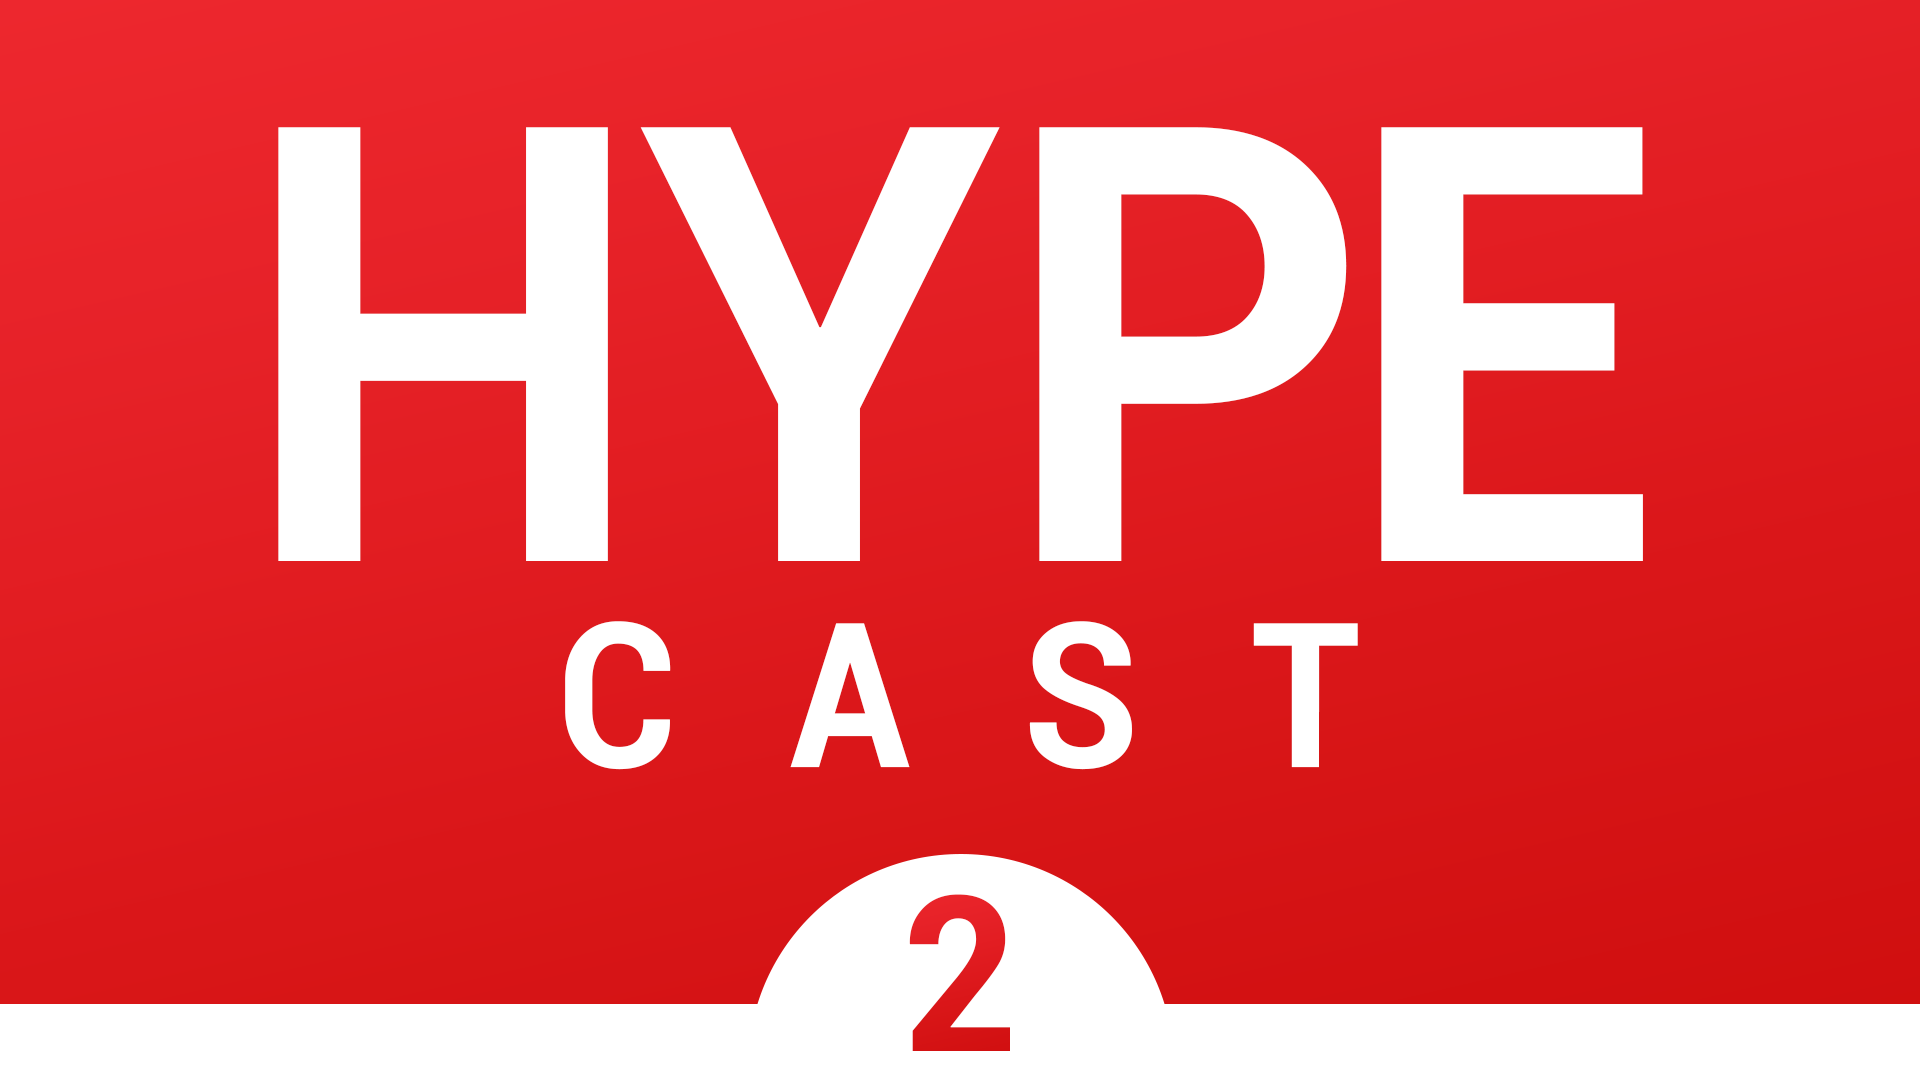 [NTH] Hype Cast #2 (Mini Consoles)